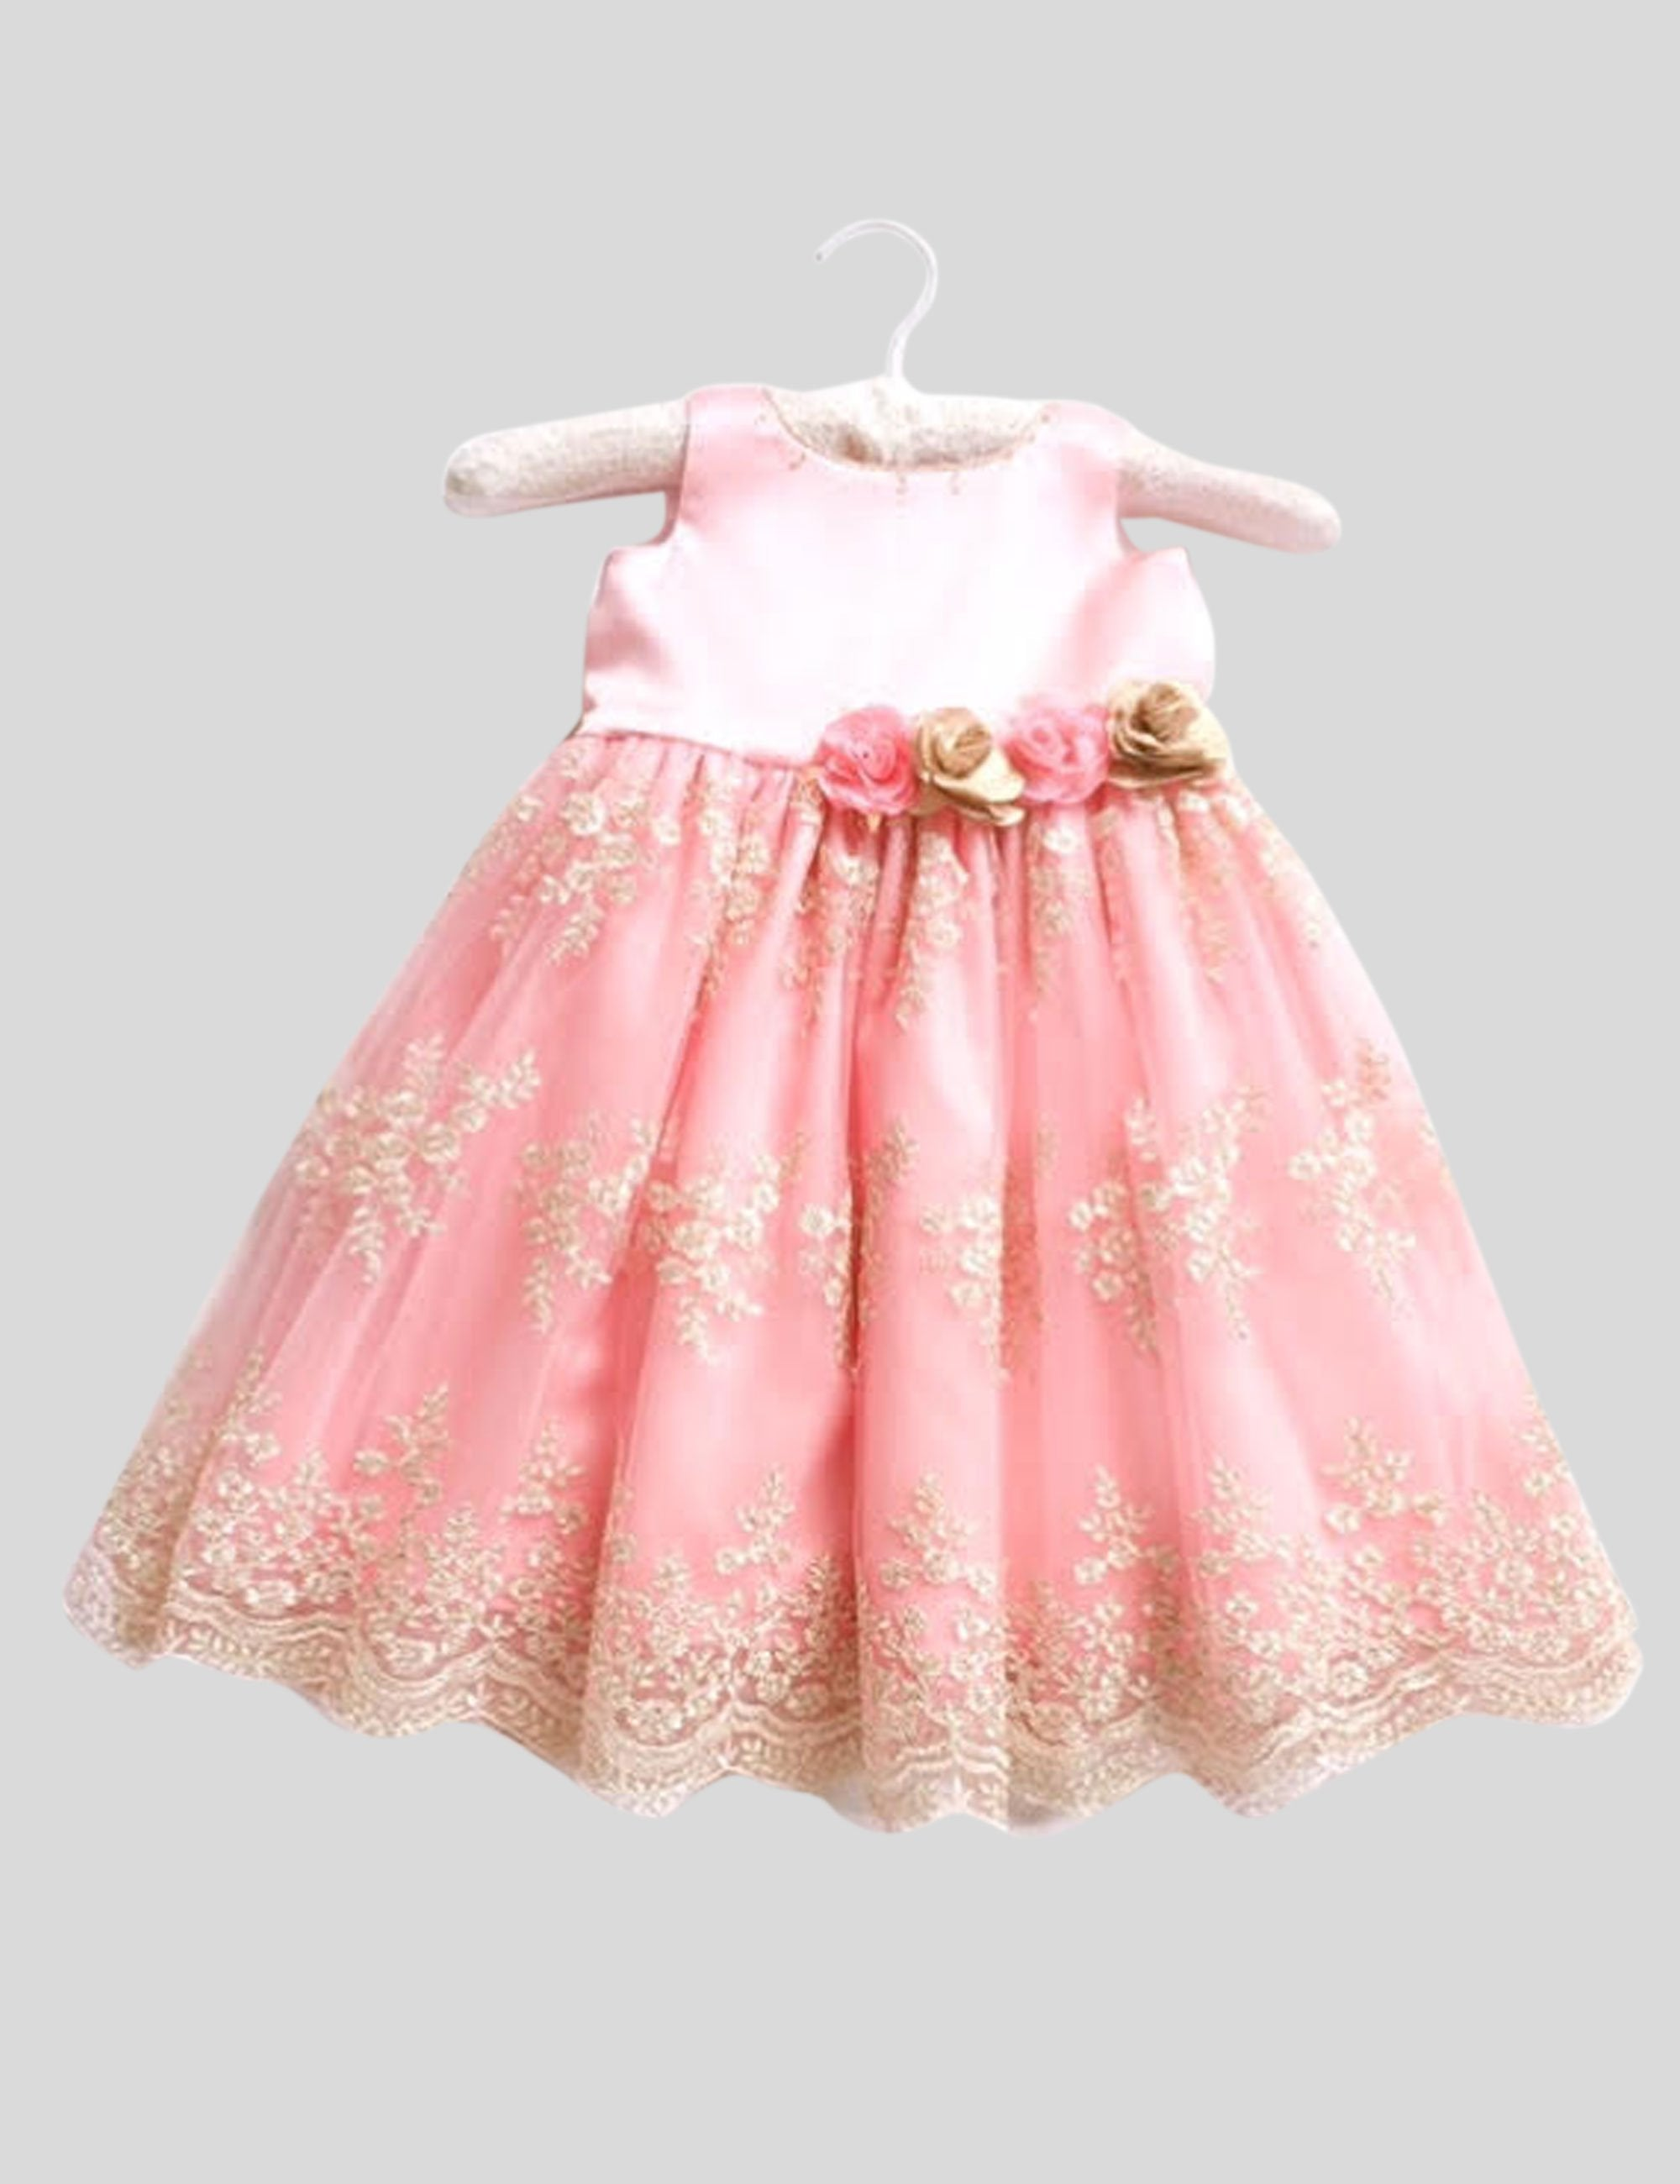 Chantelle Gown in Pink and Gold Colour for Girls